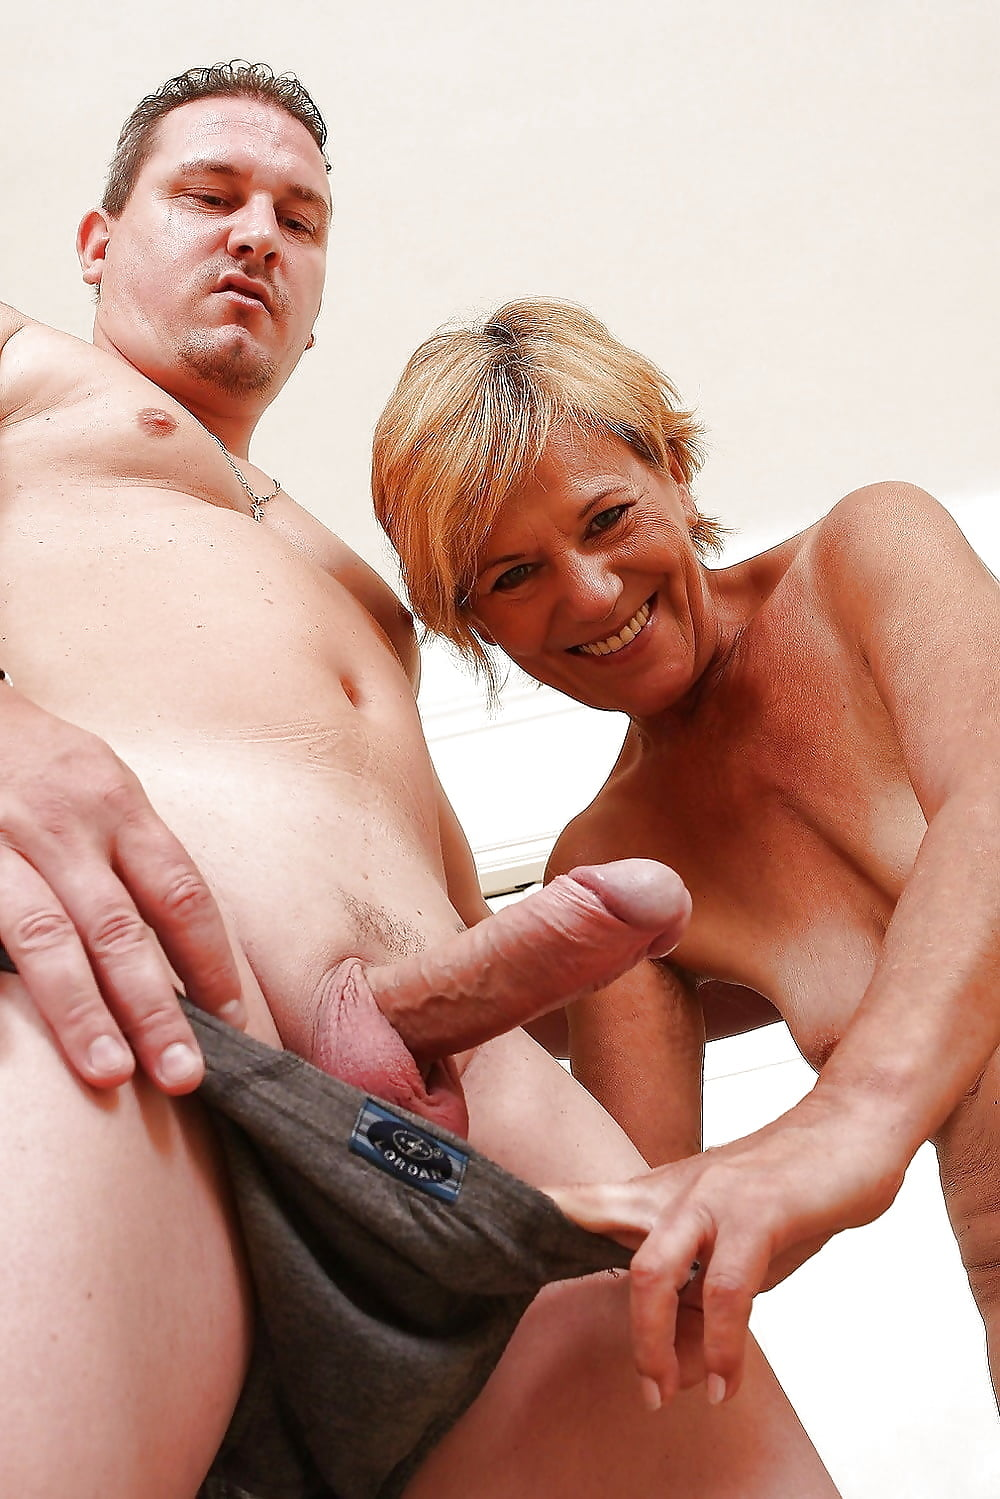 mature-nudist-seductive-with-cock-erect